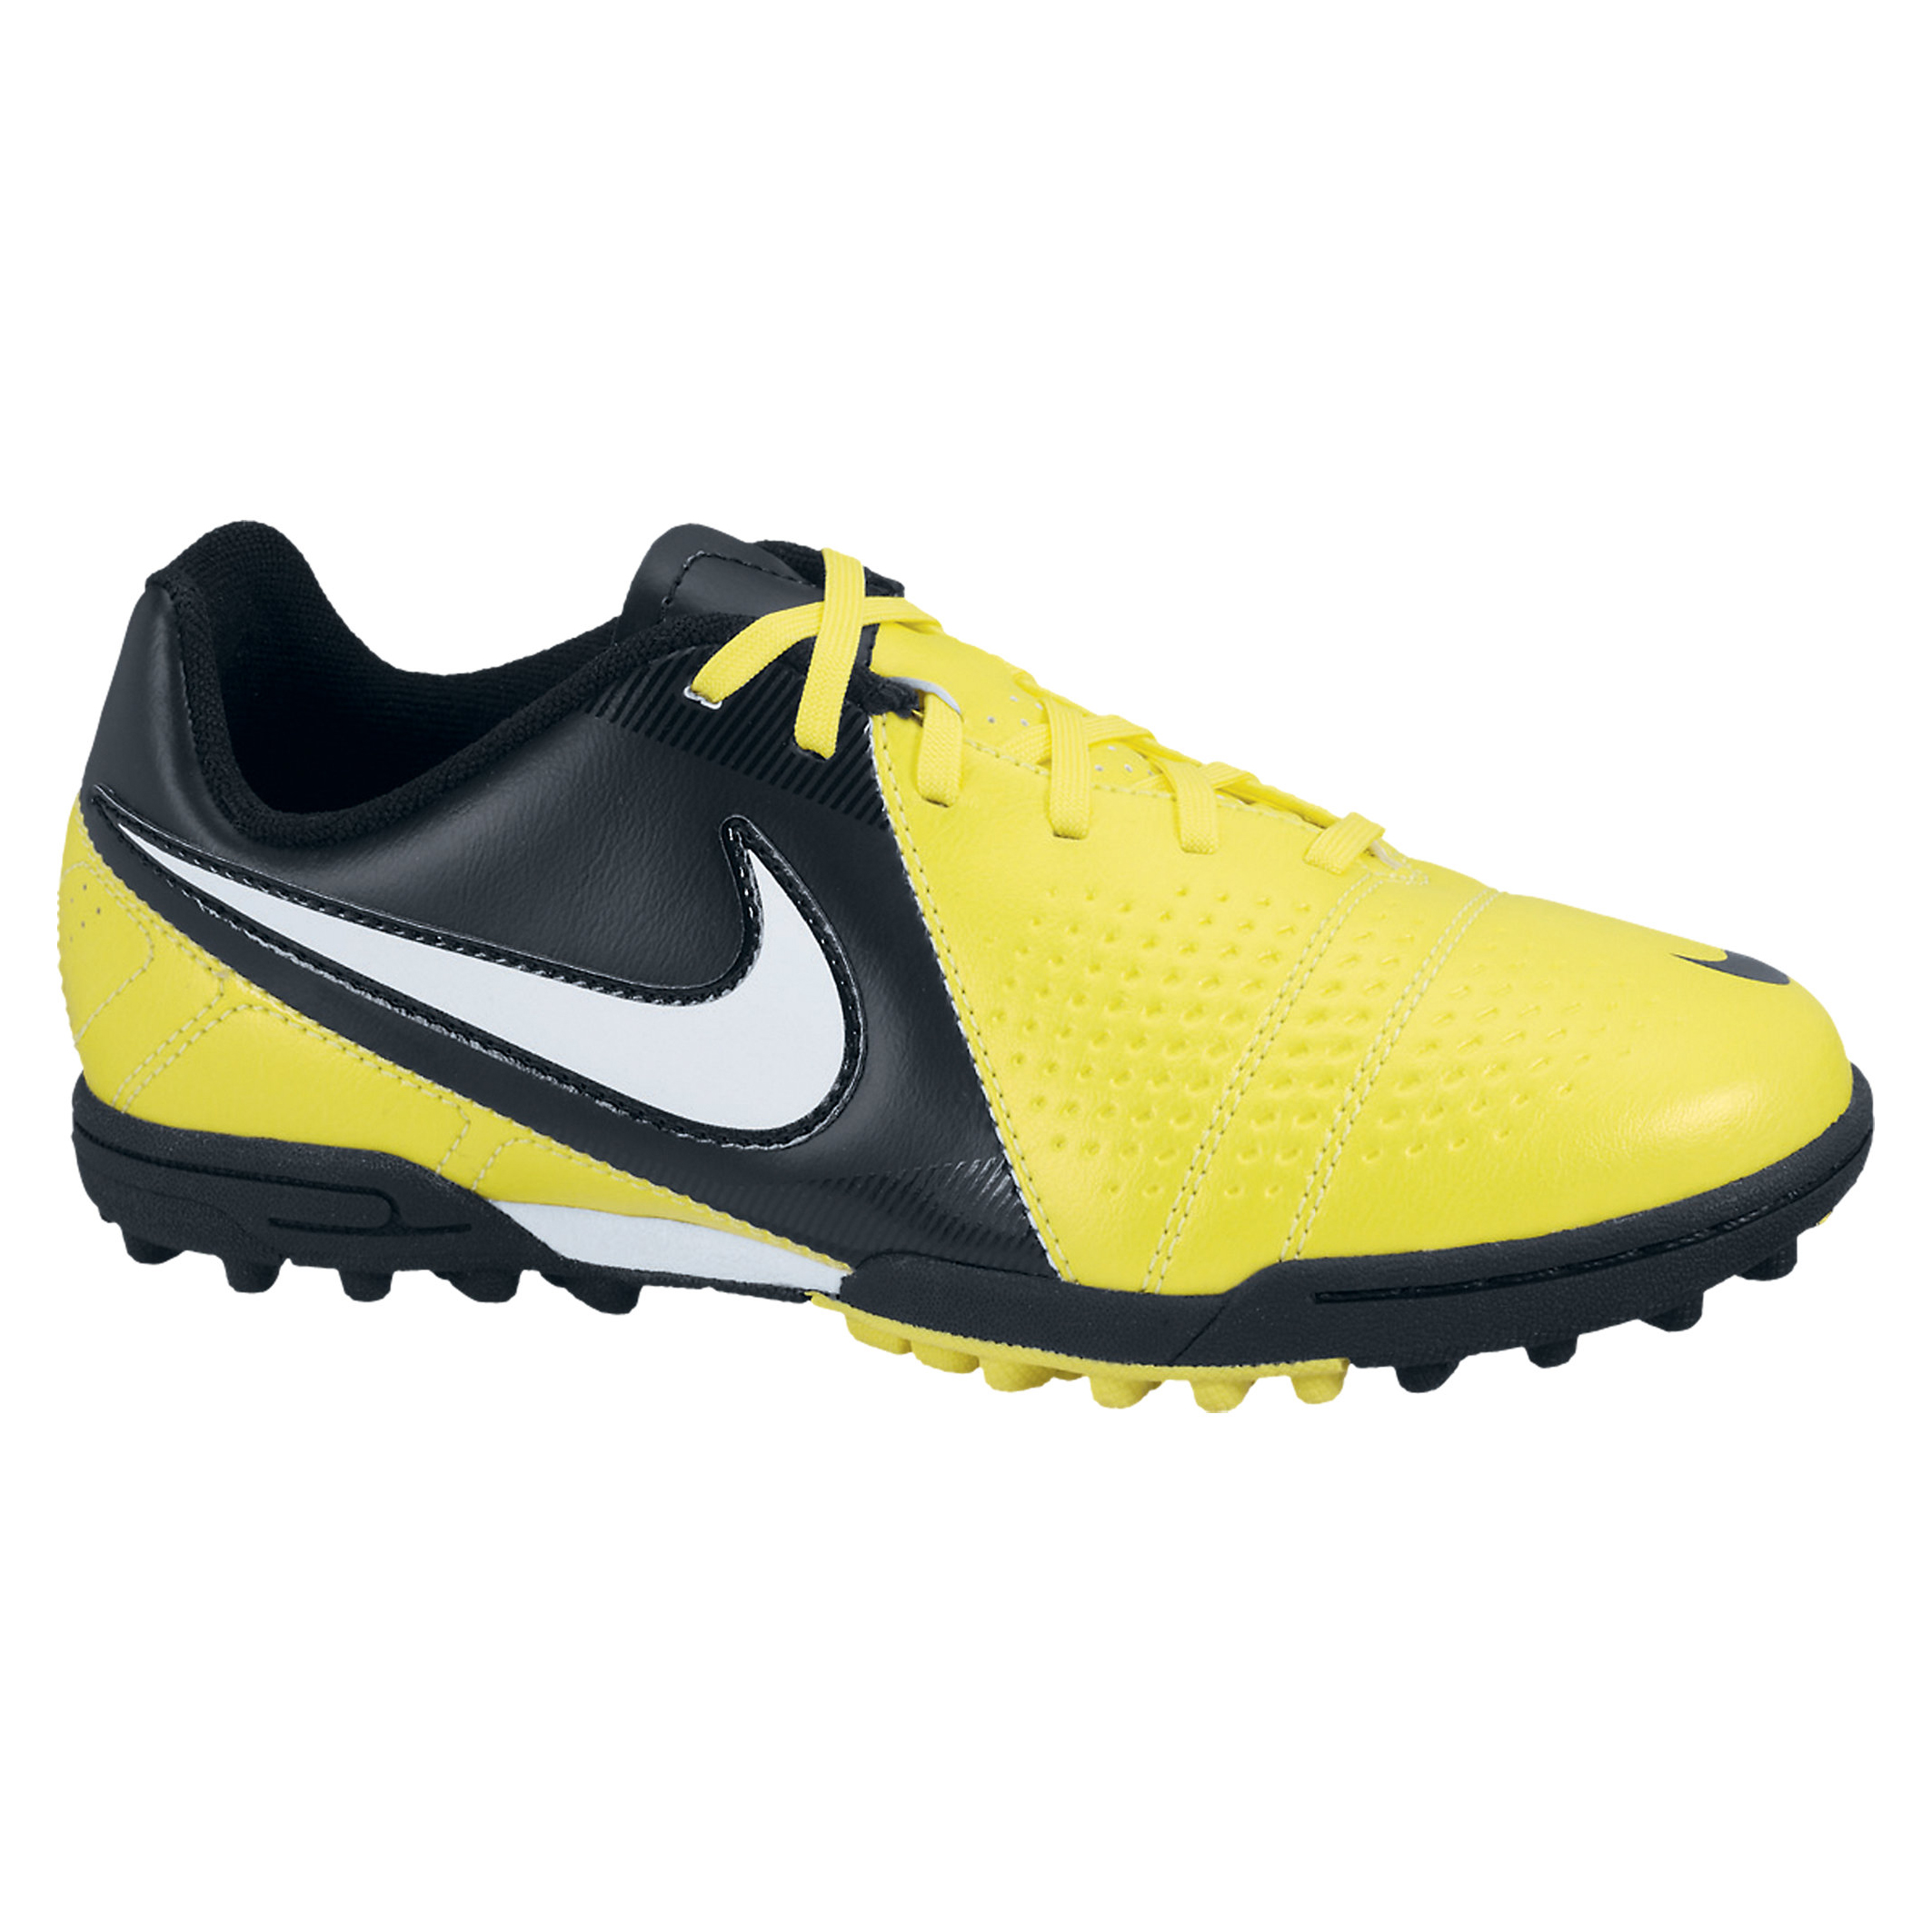 Nike CTR360 Libretto III Astro Turf Trainers - Sonic Yellow/White/Black - Kids